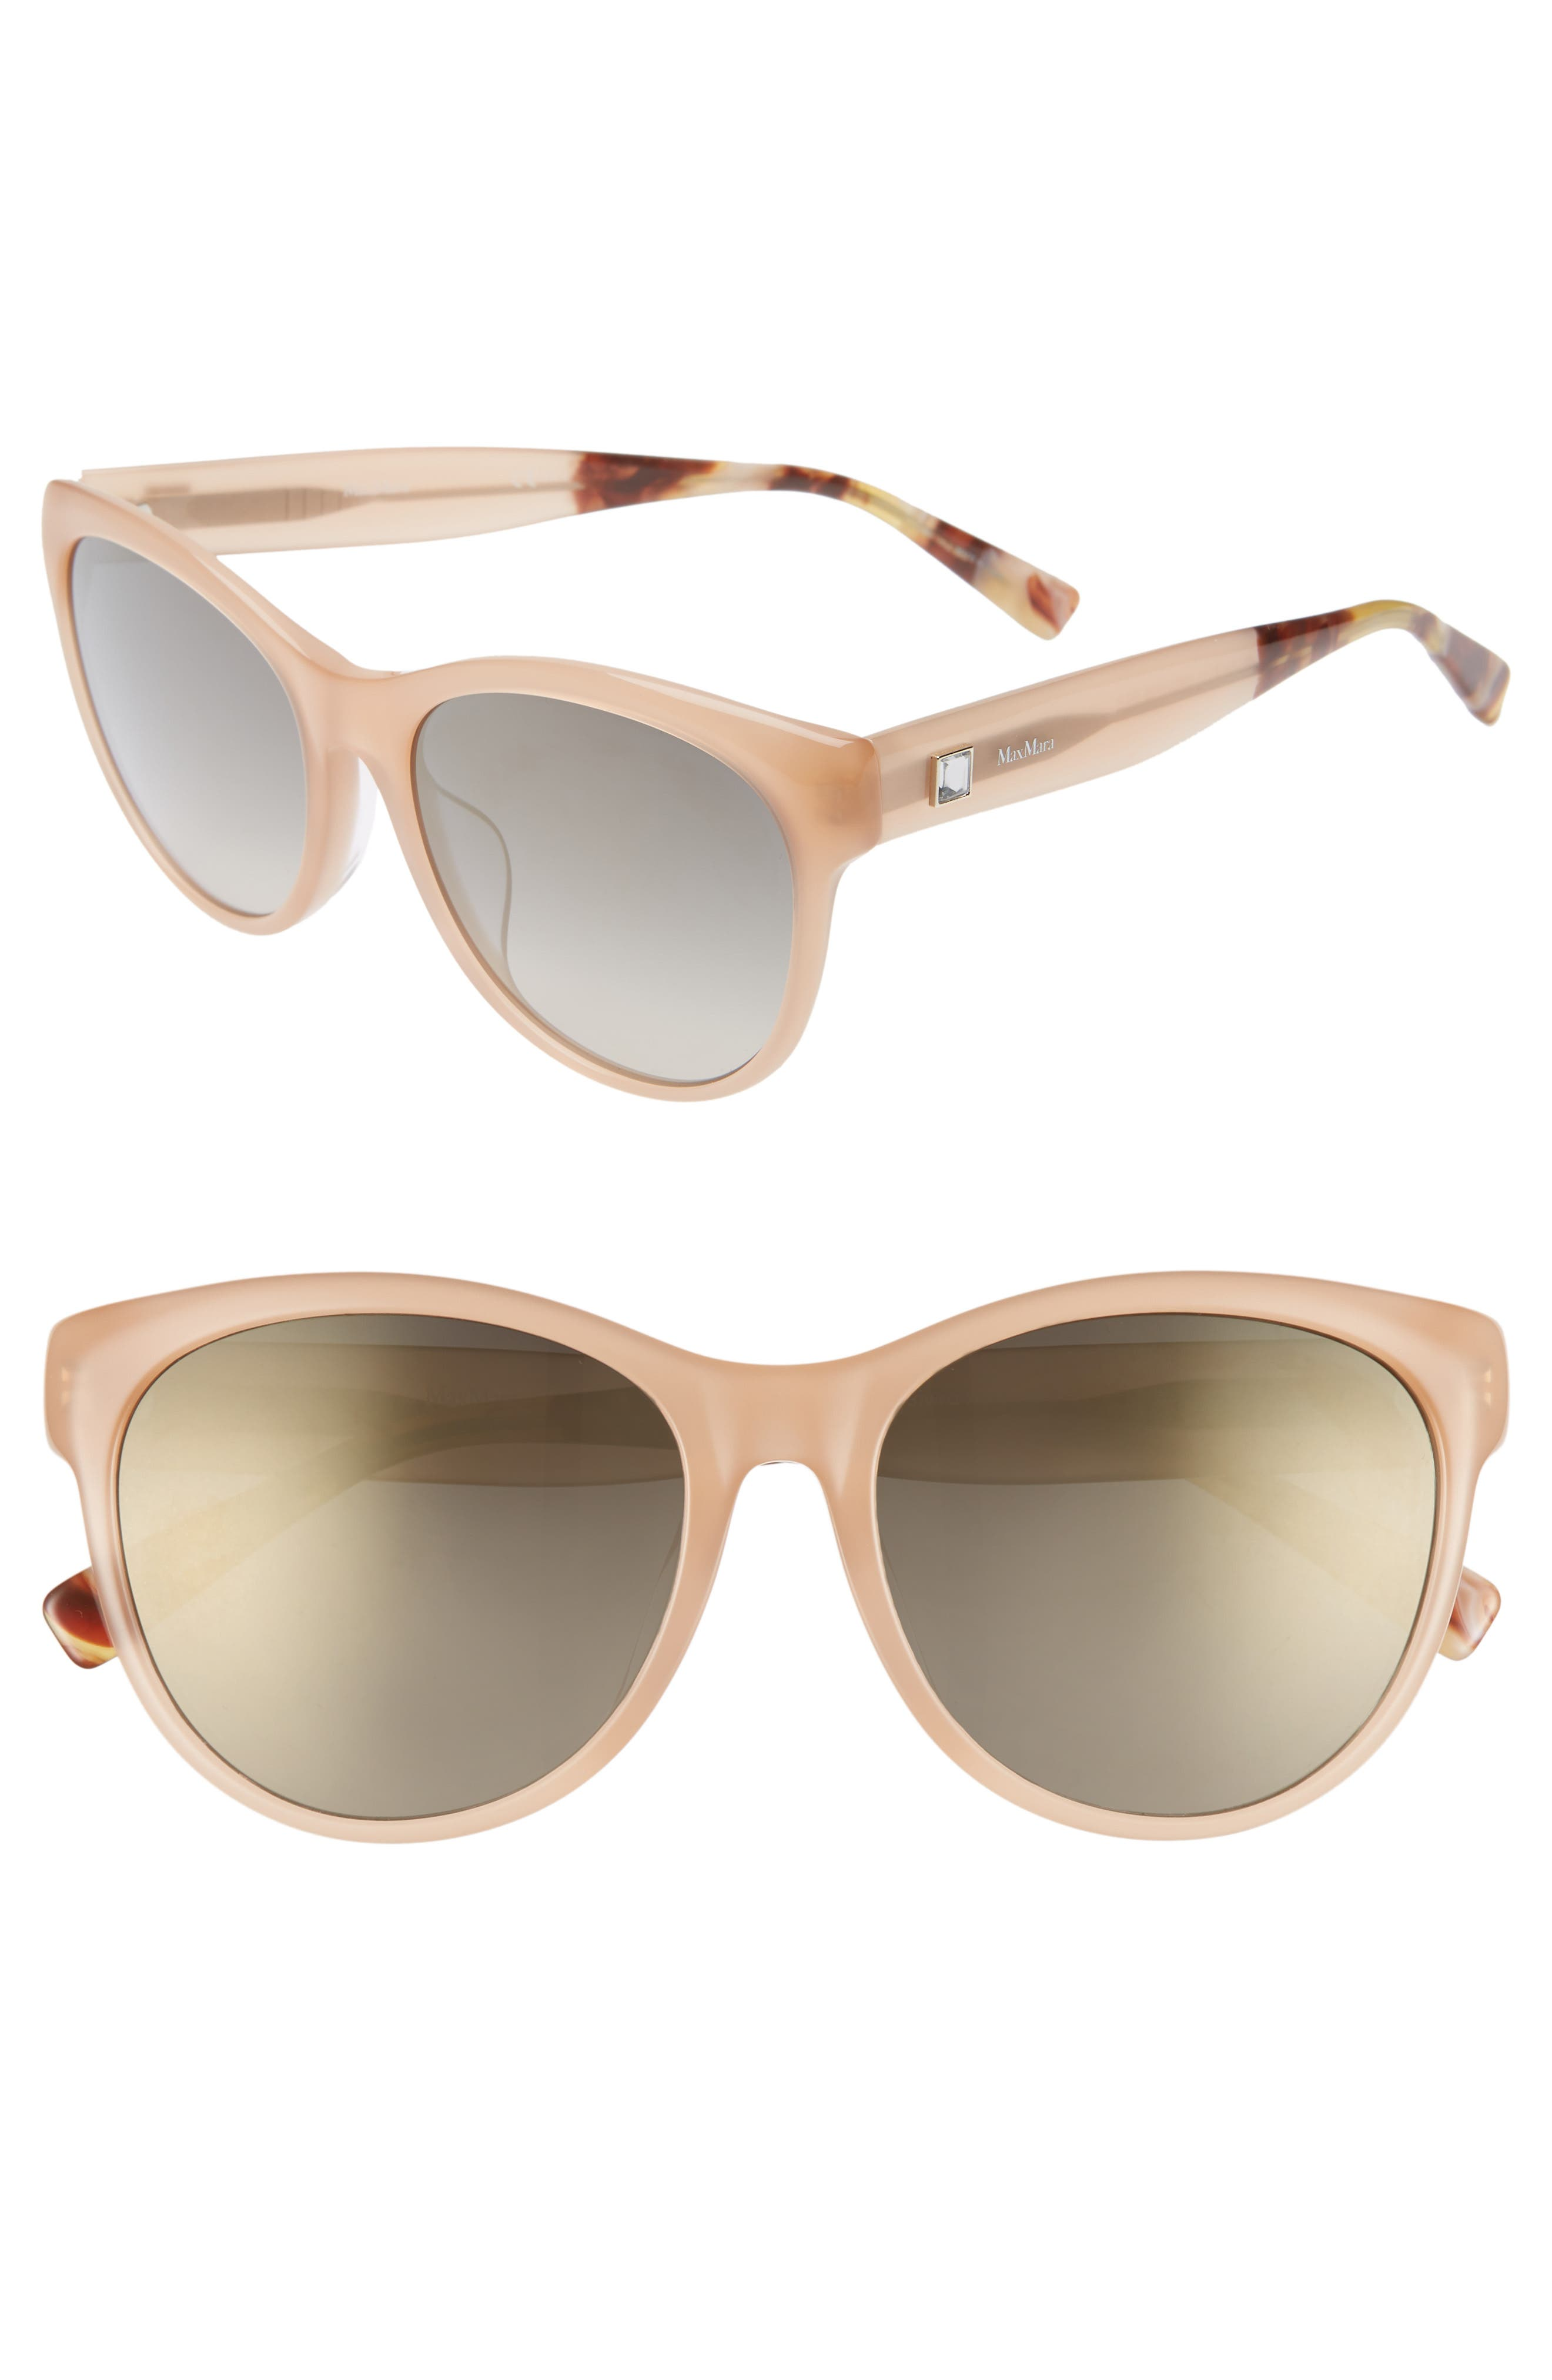 Leisure 57mm Special Fit Sunglasses,                             Main thumbnail 1, color,                             250